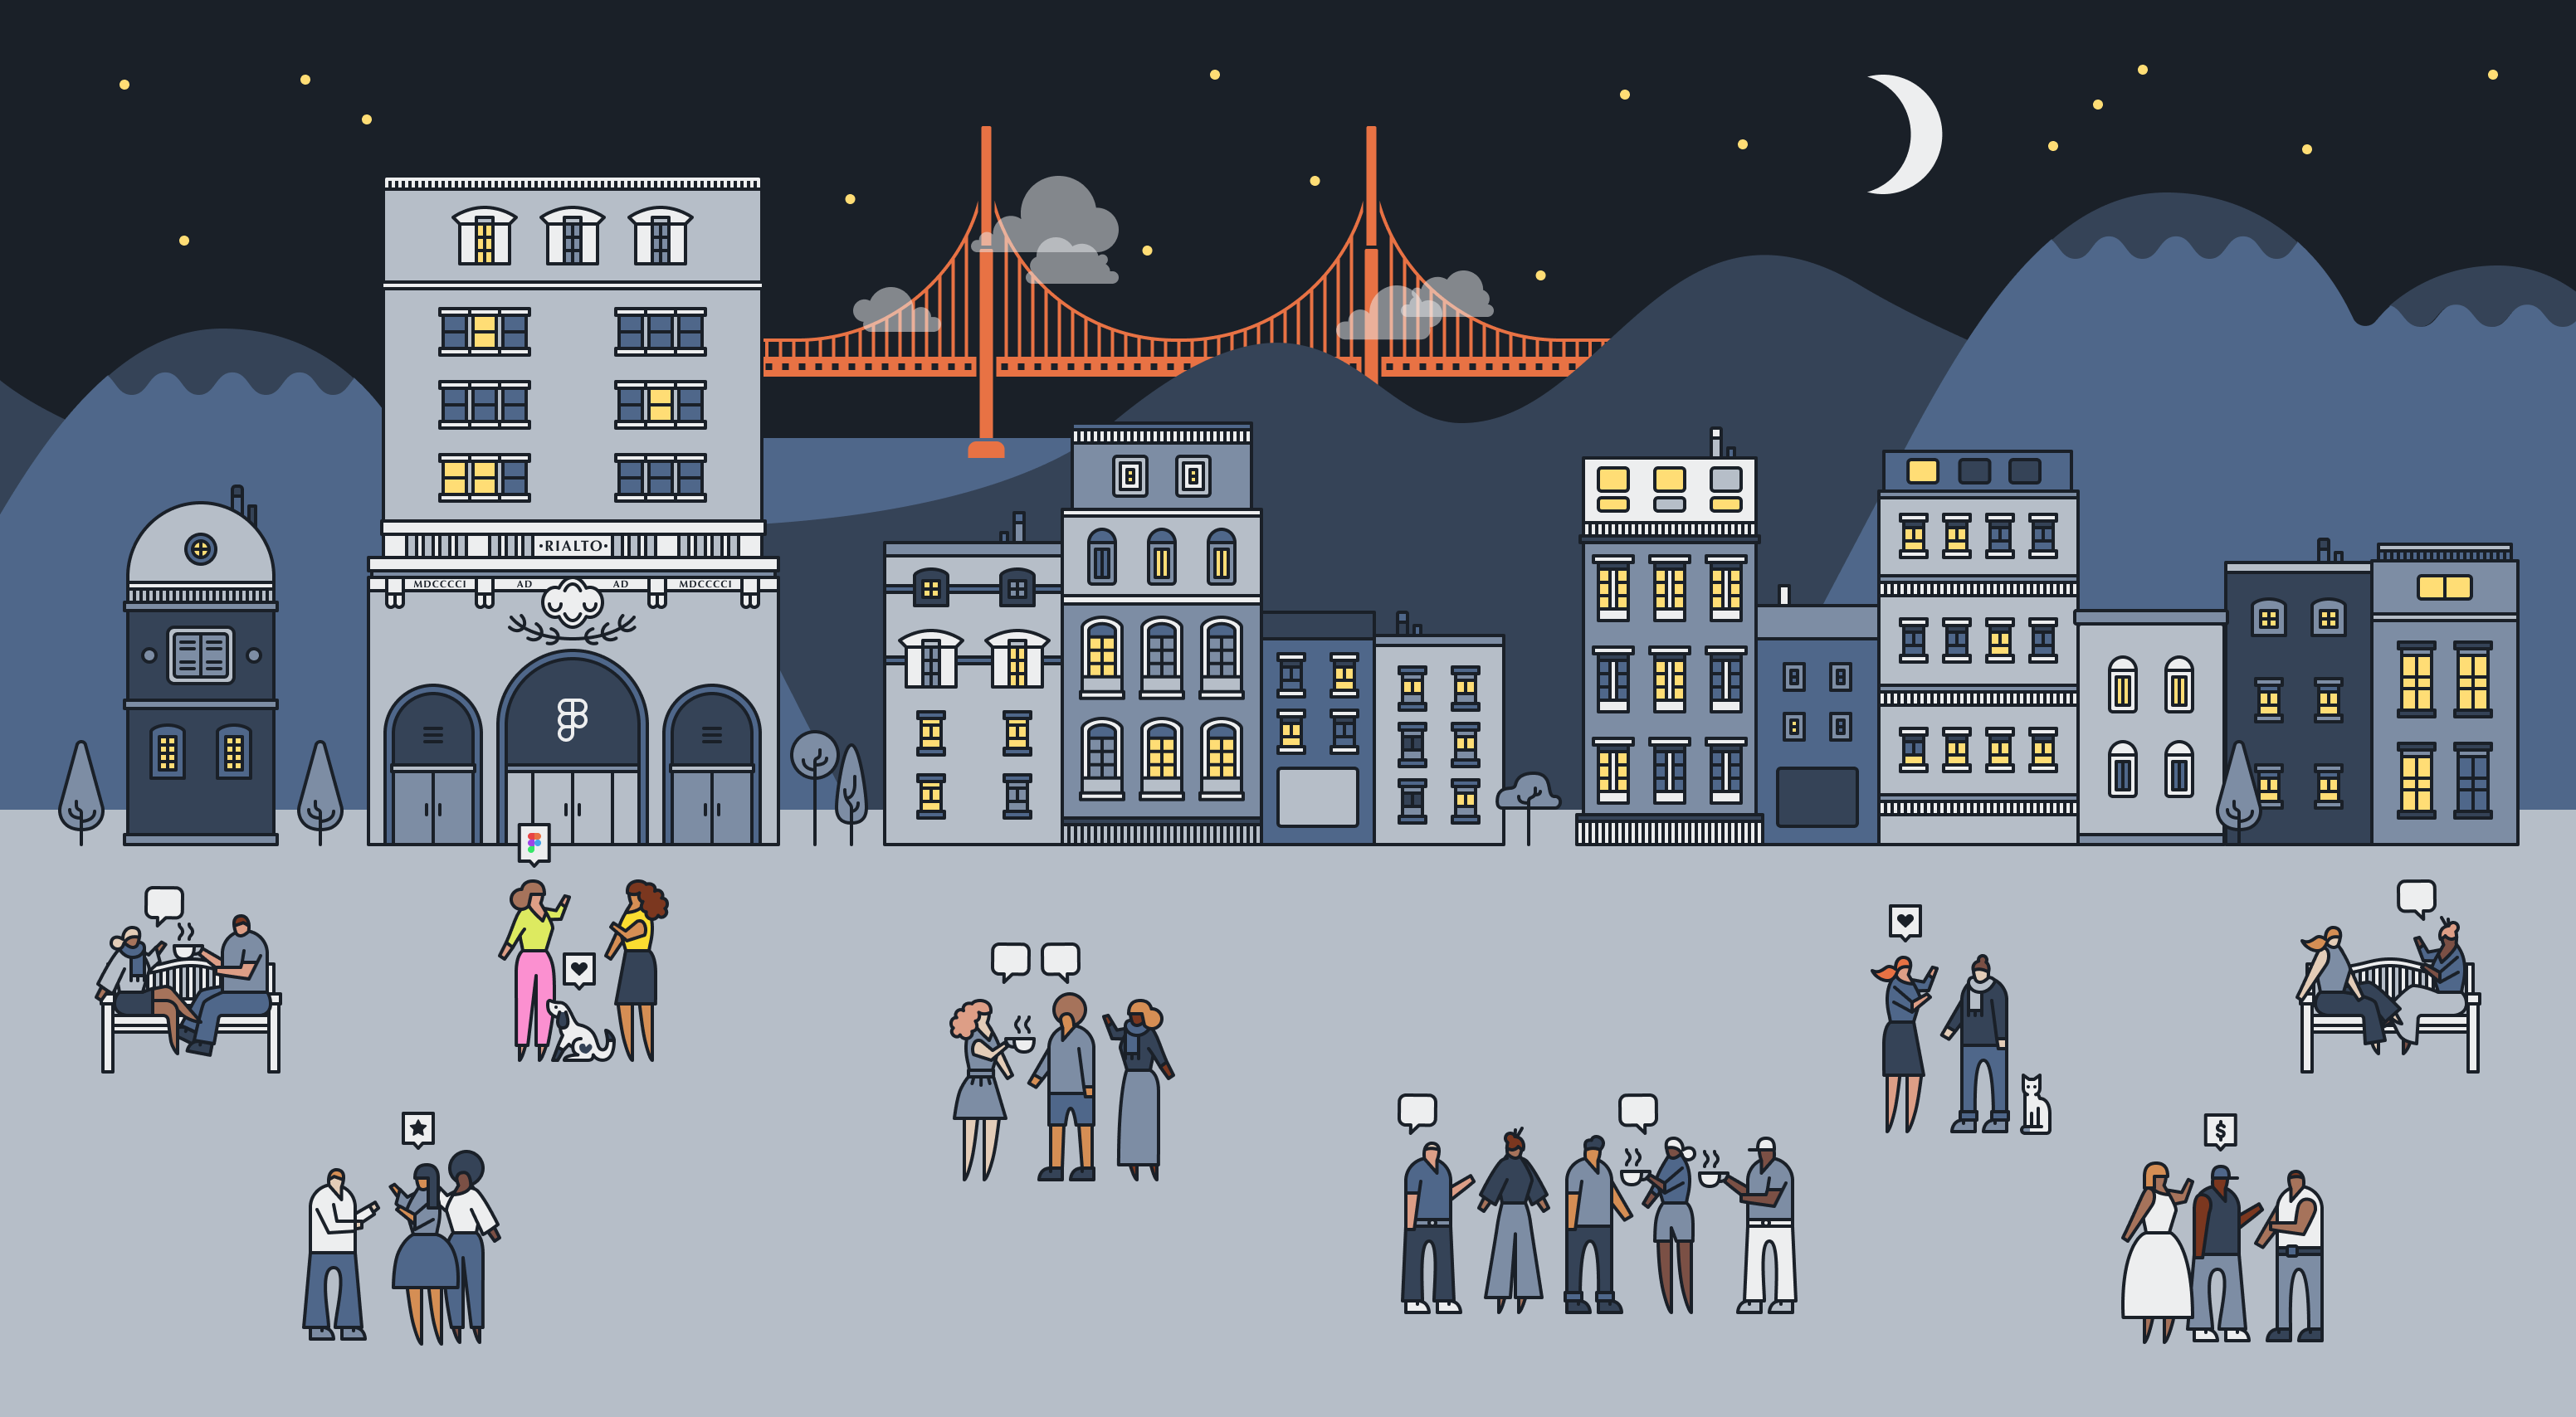 Digital illustration of people, buildings, and a skyline of San Francisco